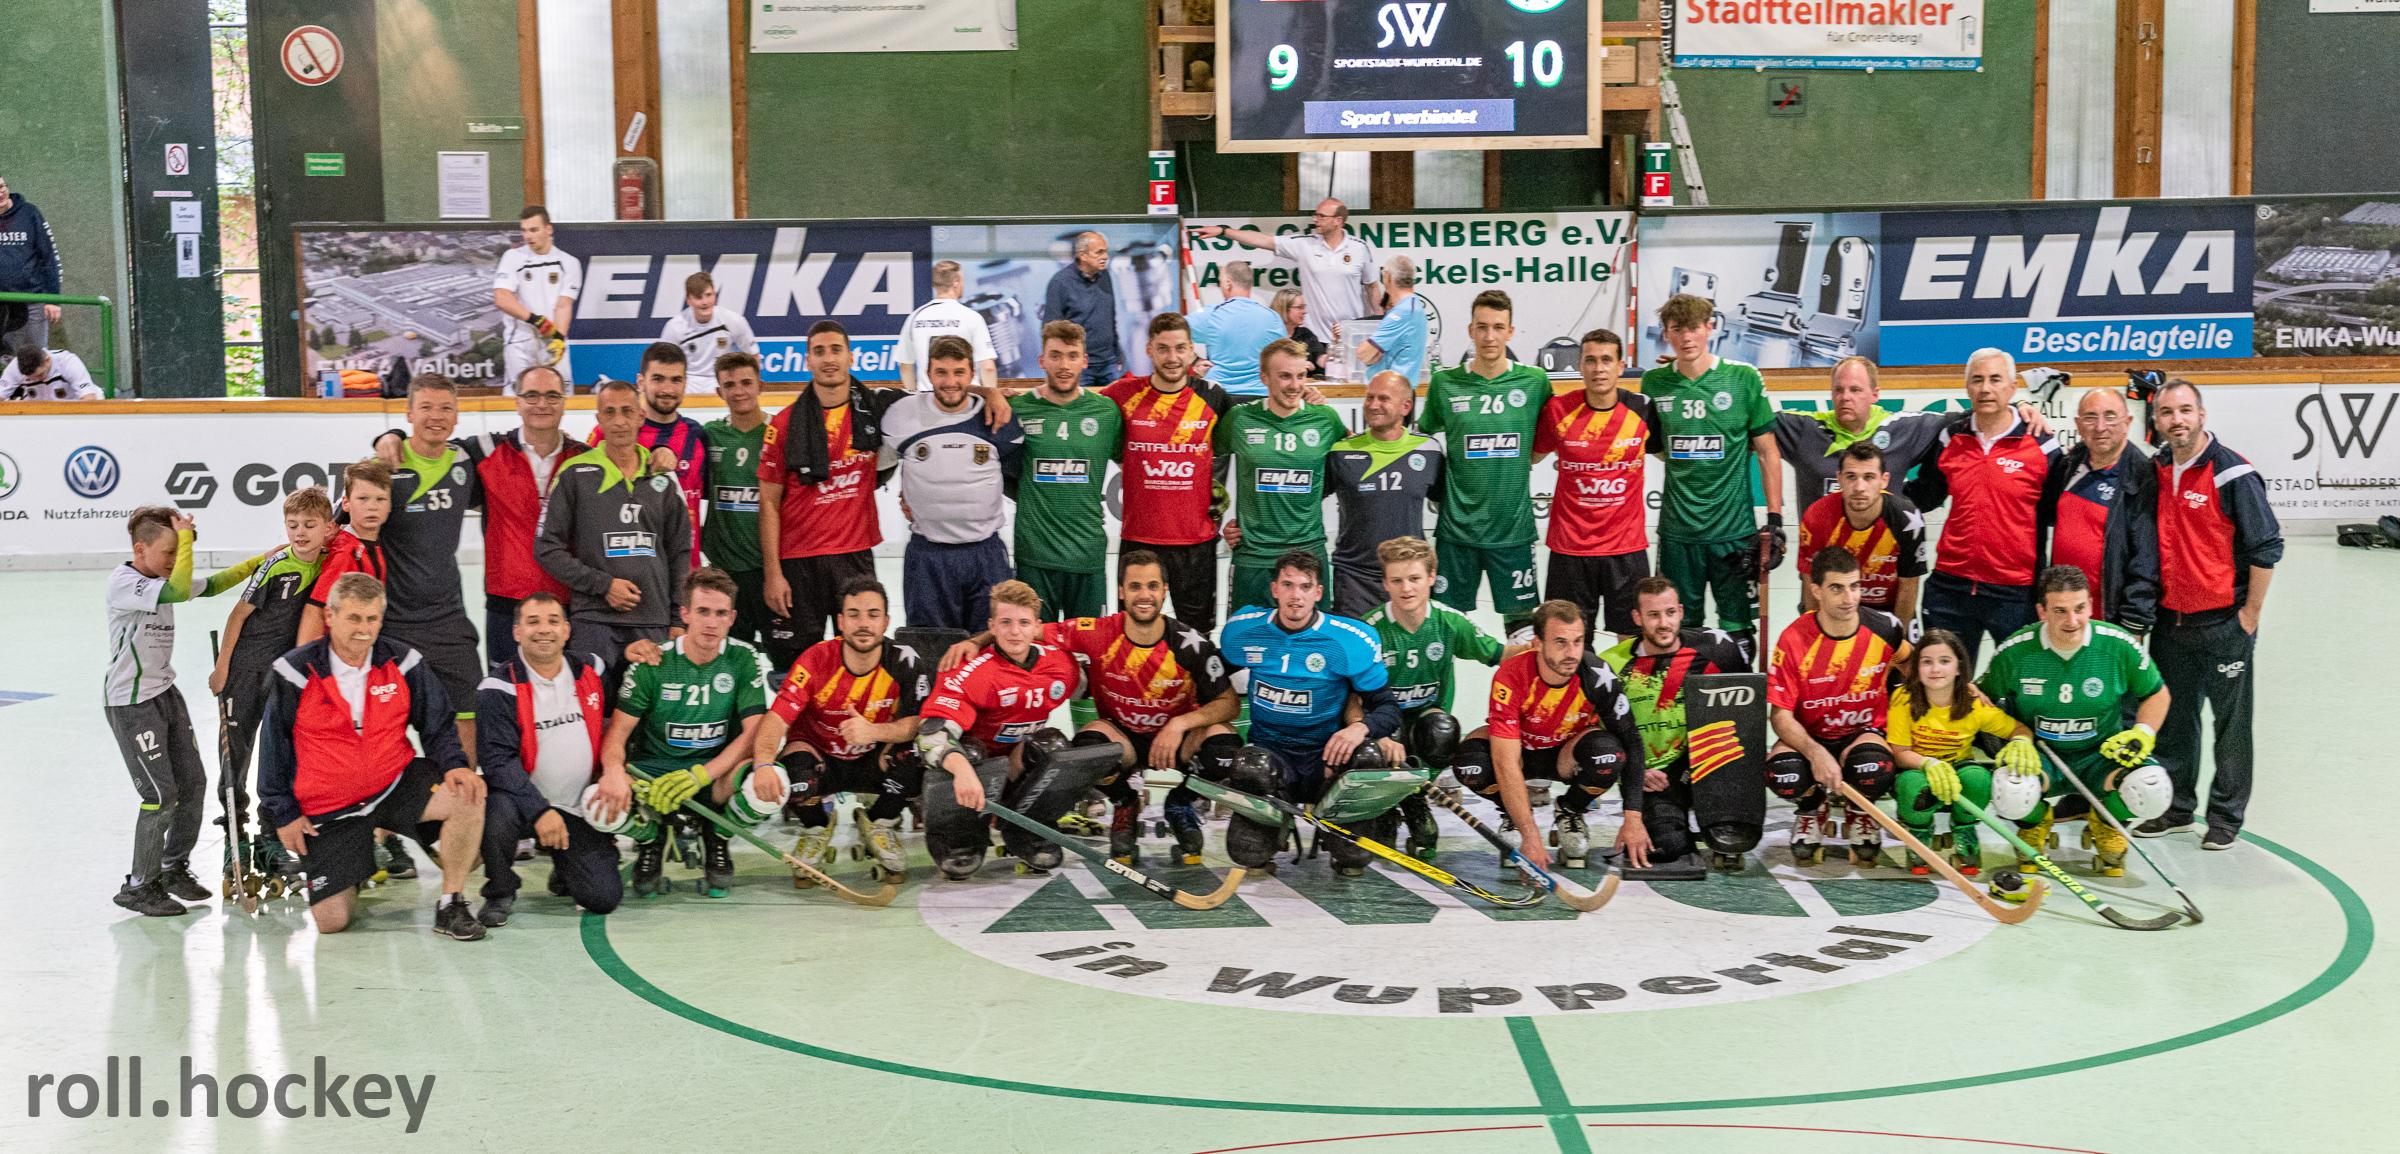 RSC Cronenberg Internationales Rollhockeyturnier Pfingsten 2019